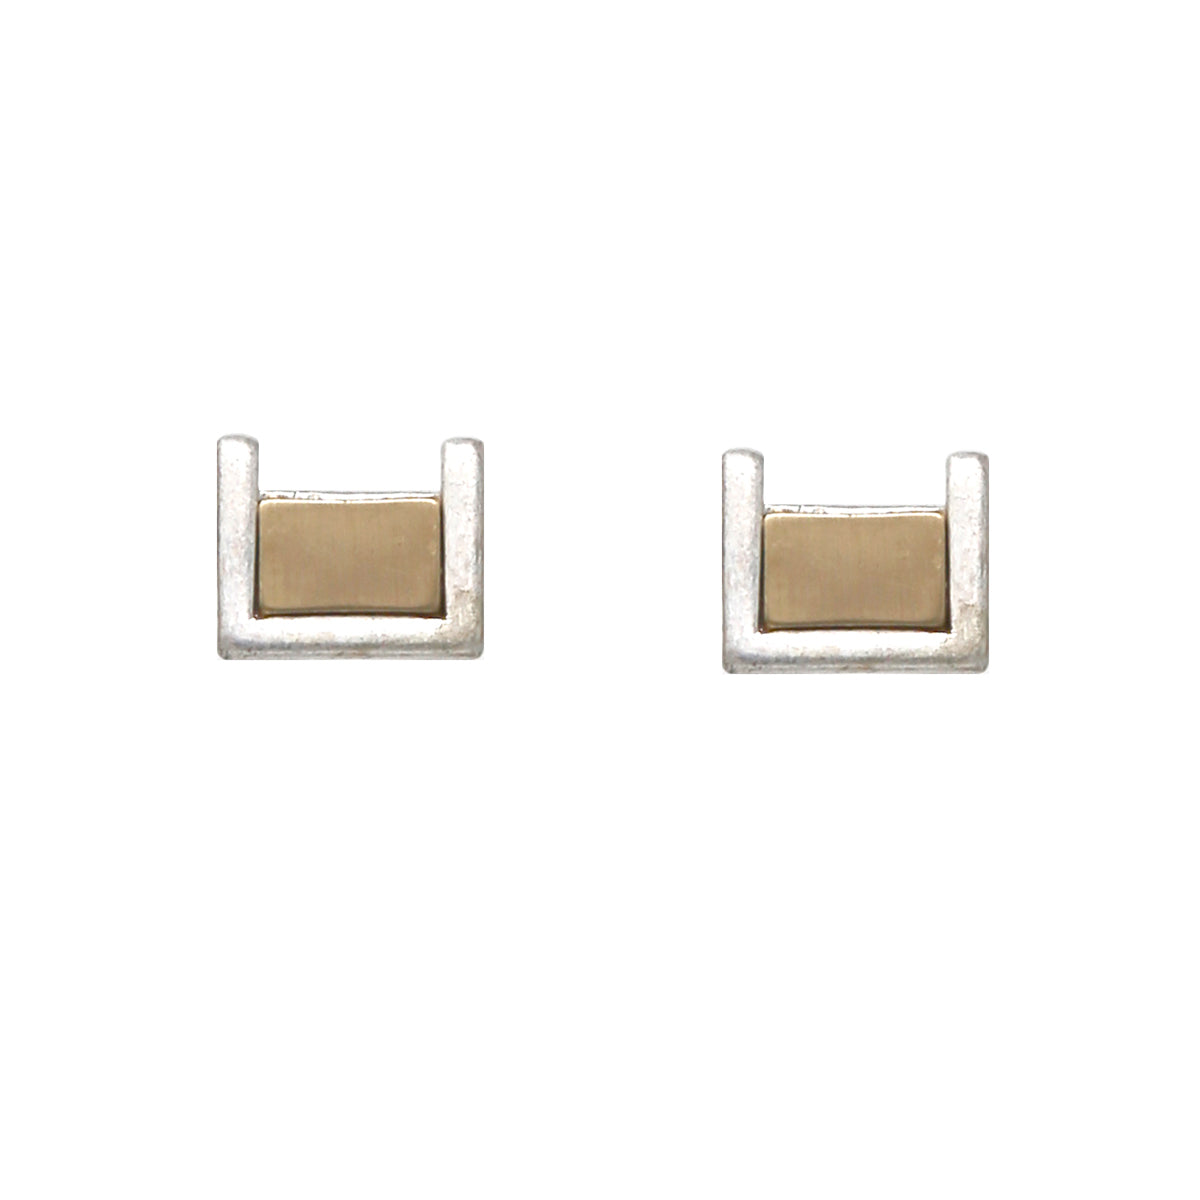 Two Tone Finished Metal Rectangle Stud Earrings